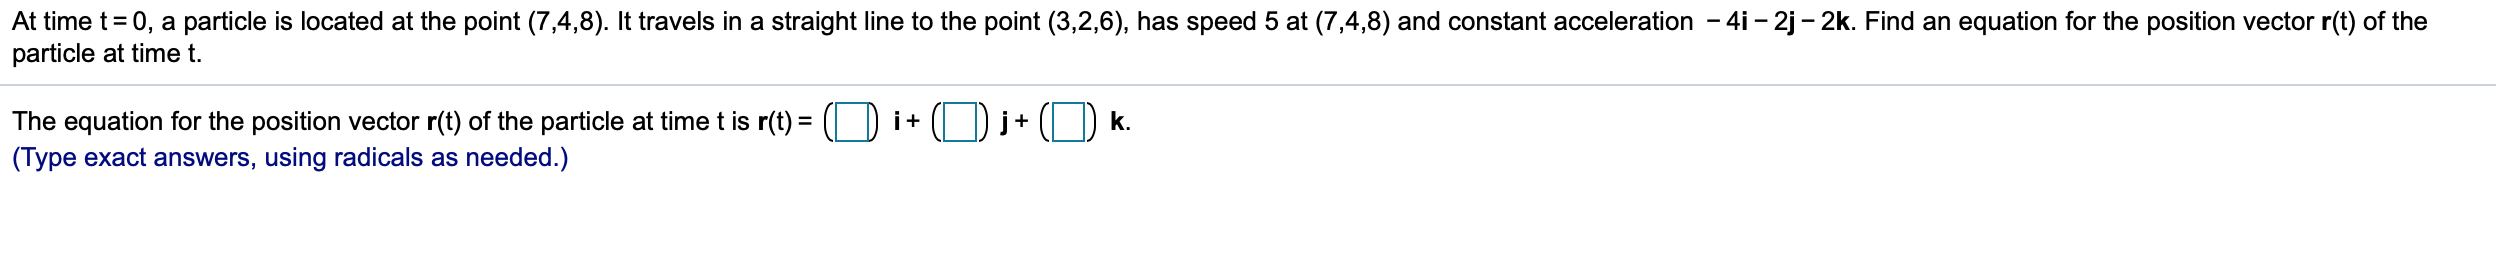 At time t = 0, a particle is located at the point (7,4,8). It travels in a straight line to the point (3,2,6), has speed 5 at